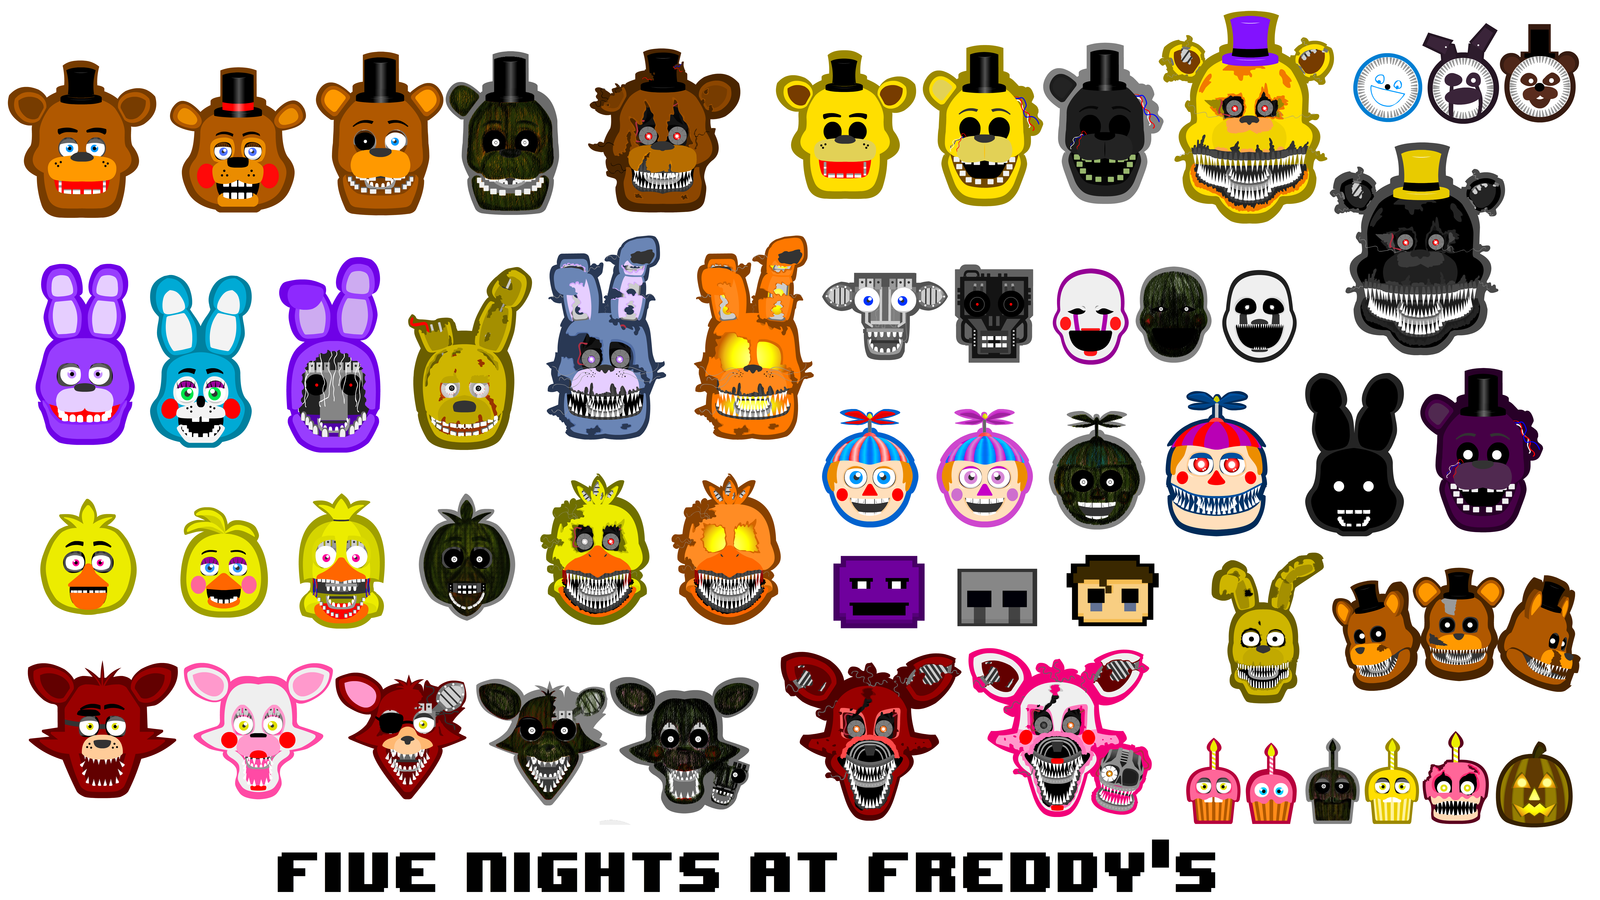 who likes FNAF the more?